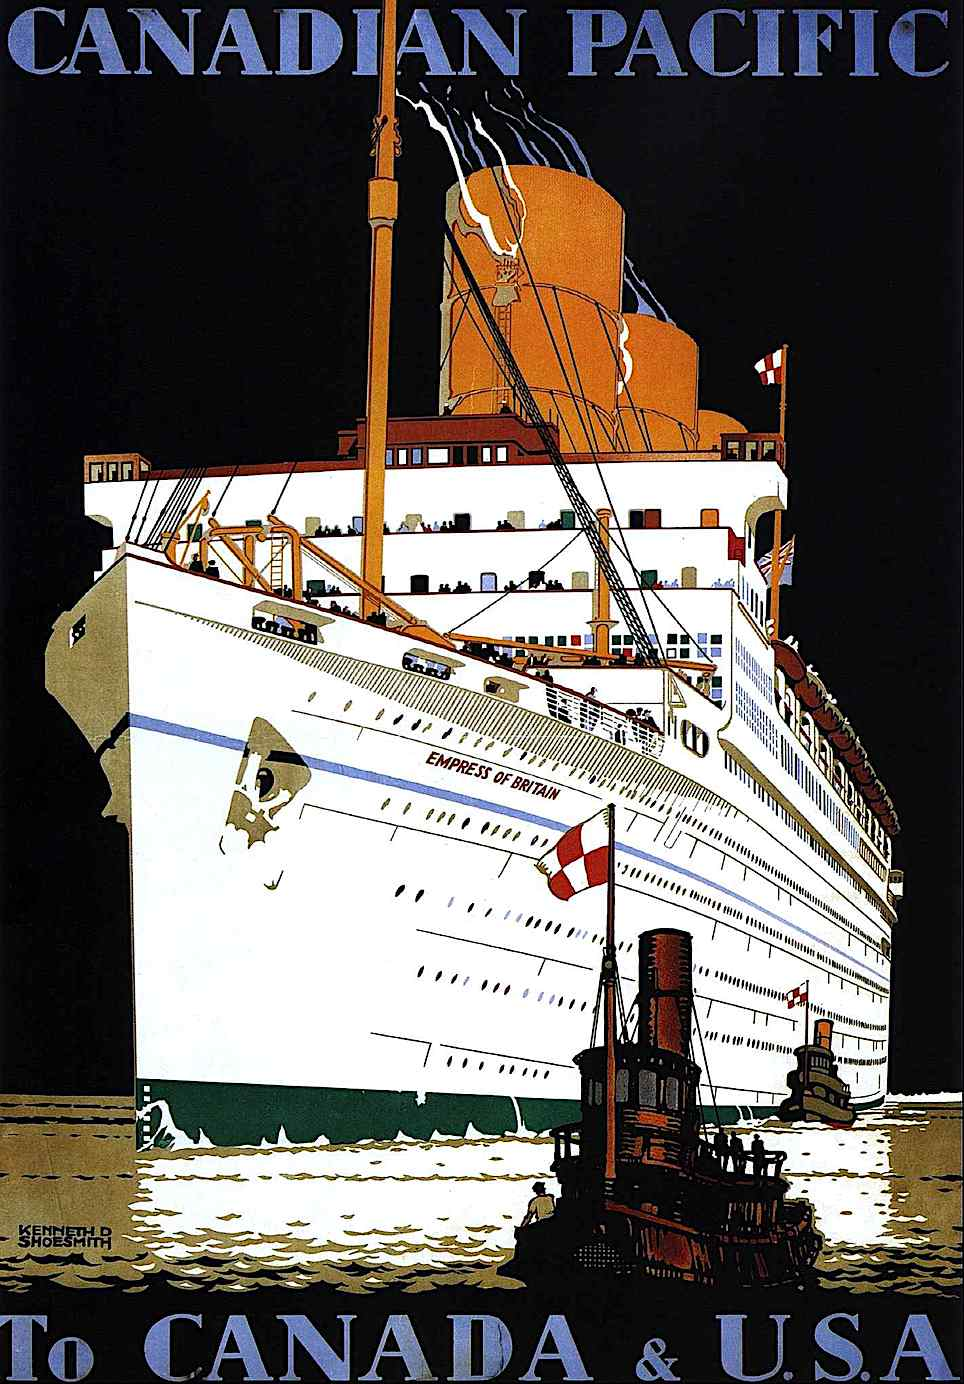 a Kenneth Shoesmith 1933 travel poster illustration for Canadian the Pacifics line, a giant ship with tugboat